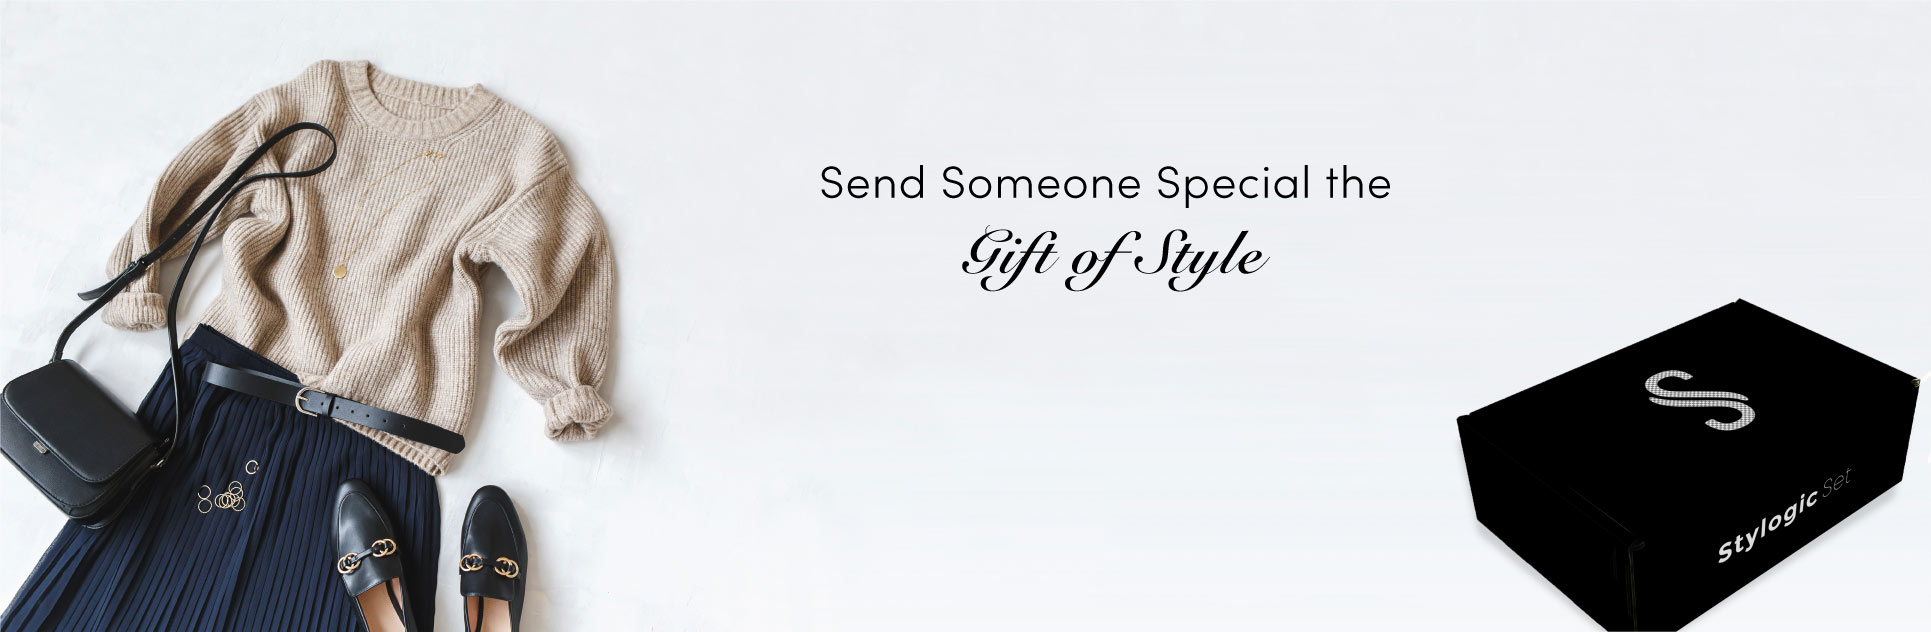 Send Someone Special the Gift of Style